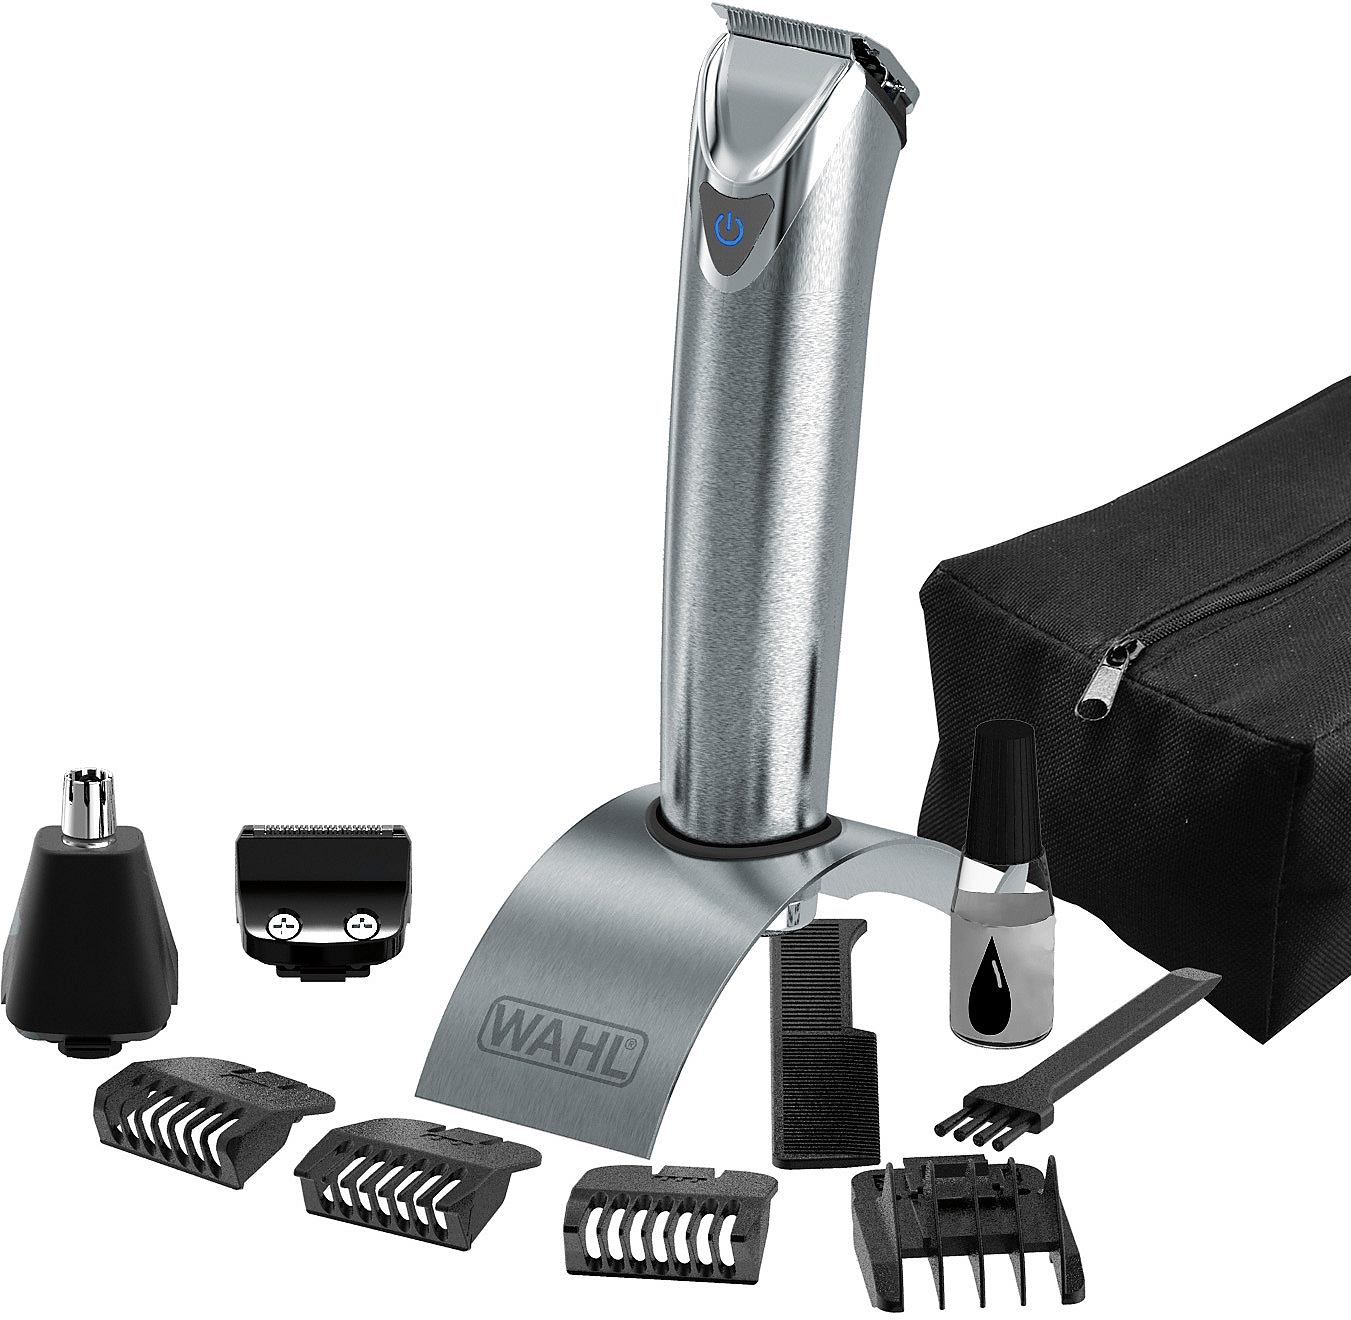 WAHL Trimmerset 9818-116 STAINLESS STEEL